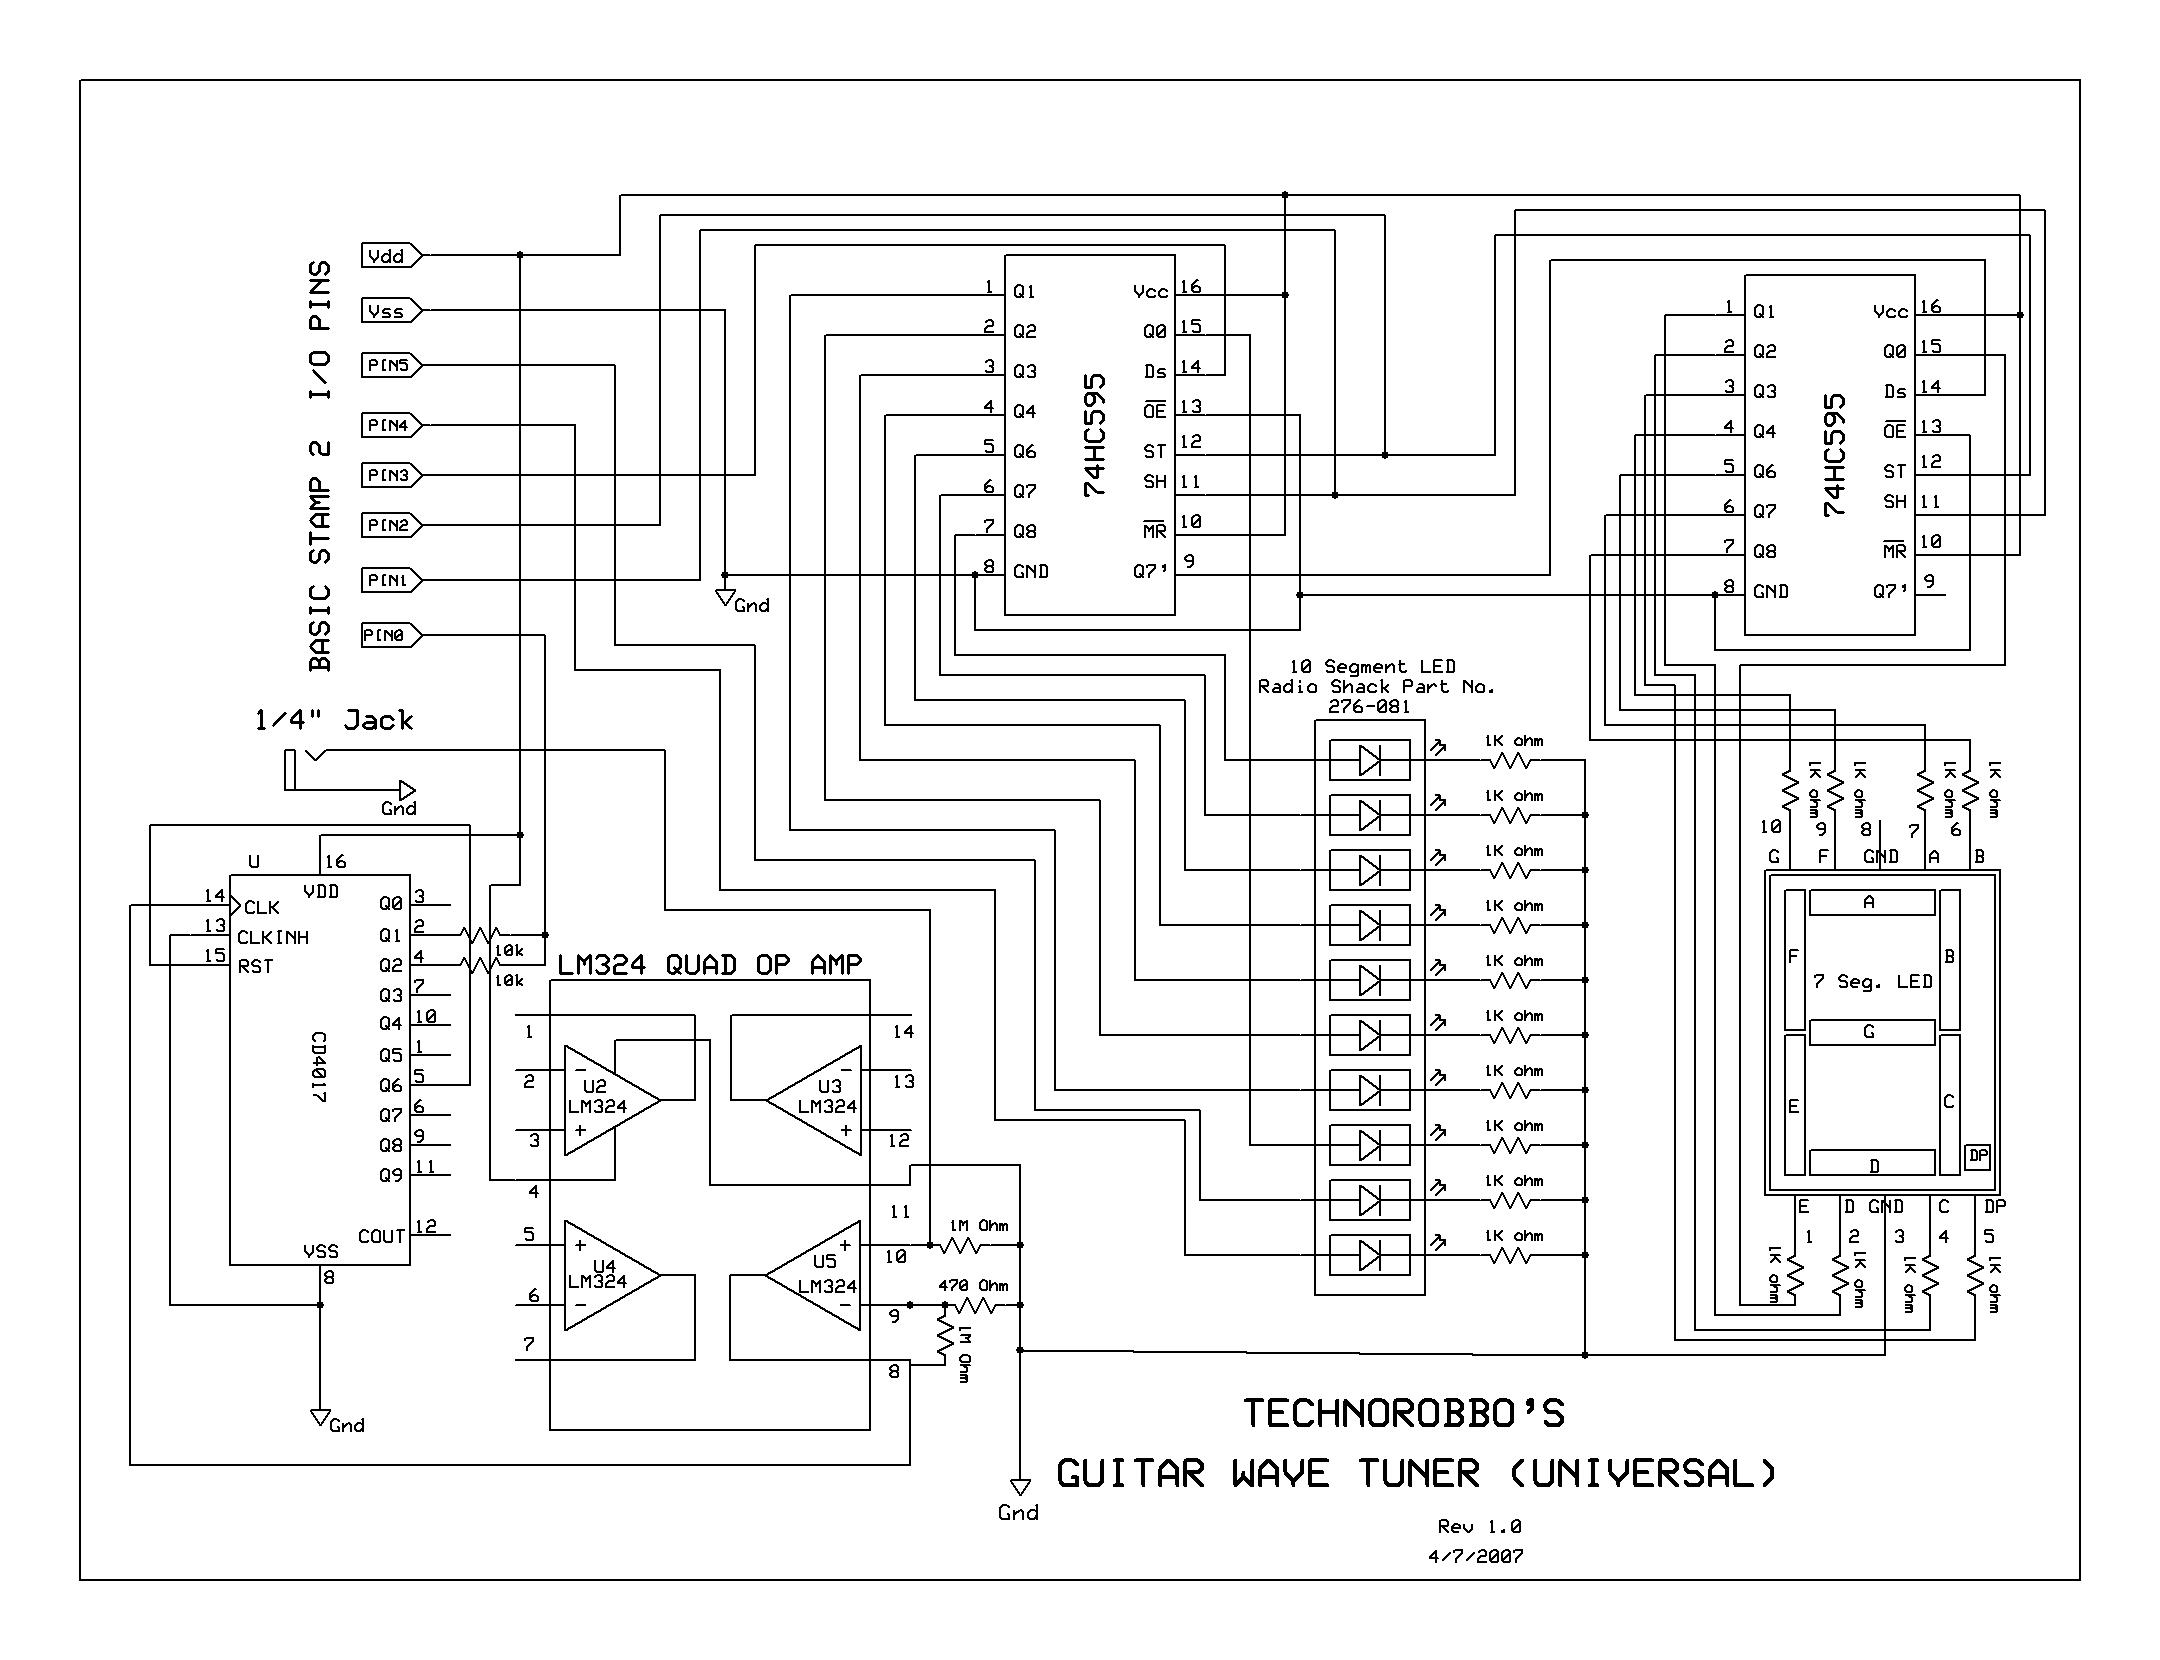 Le9 Wiring Diagram Free For You Jack Radio Shack Transformer Diagrams Basic Electrical Schematic